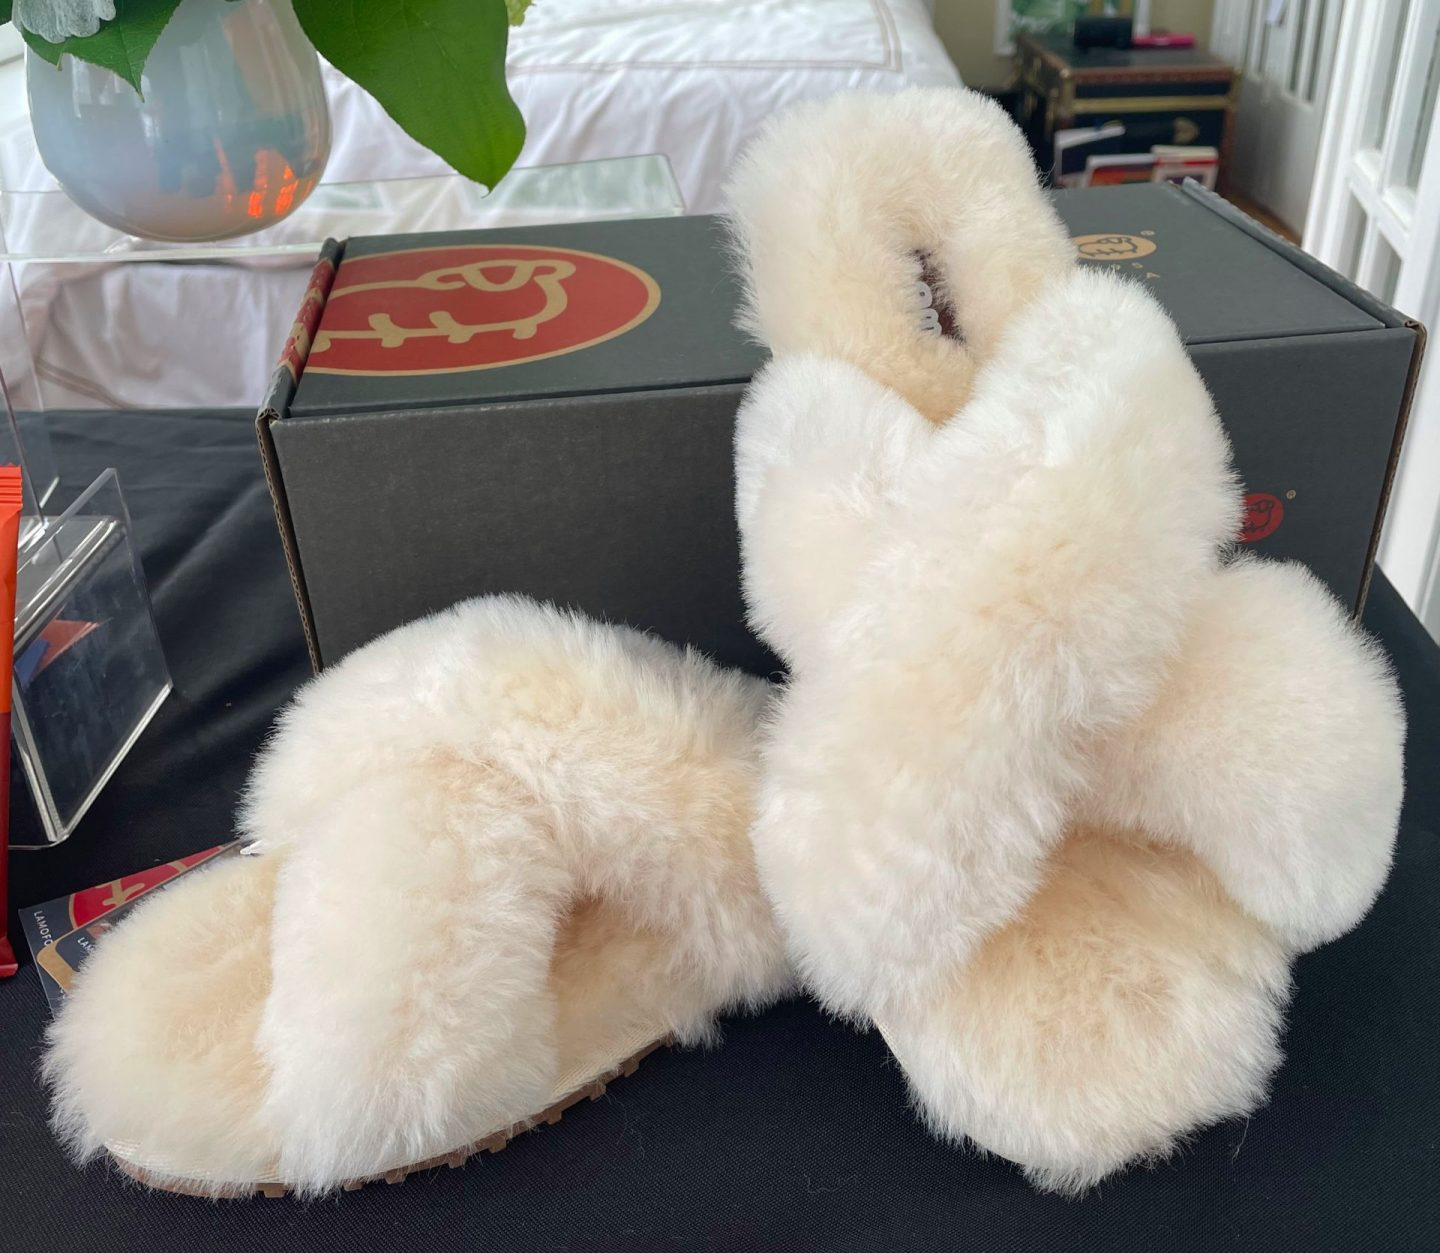 Slippers for Valentine's Day